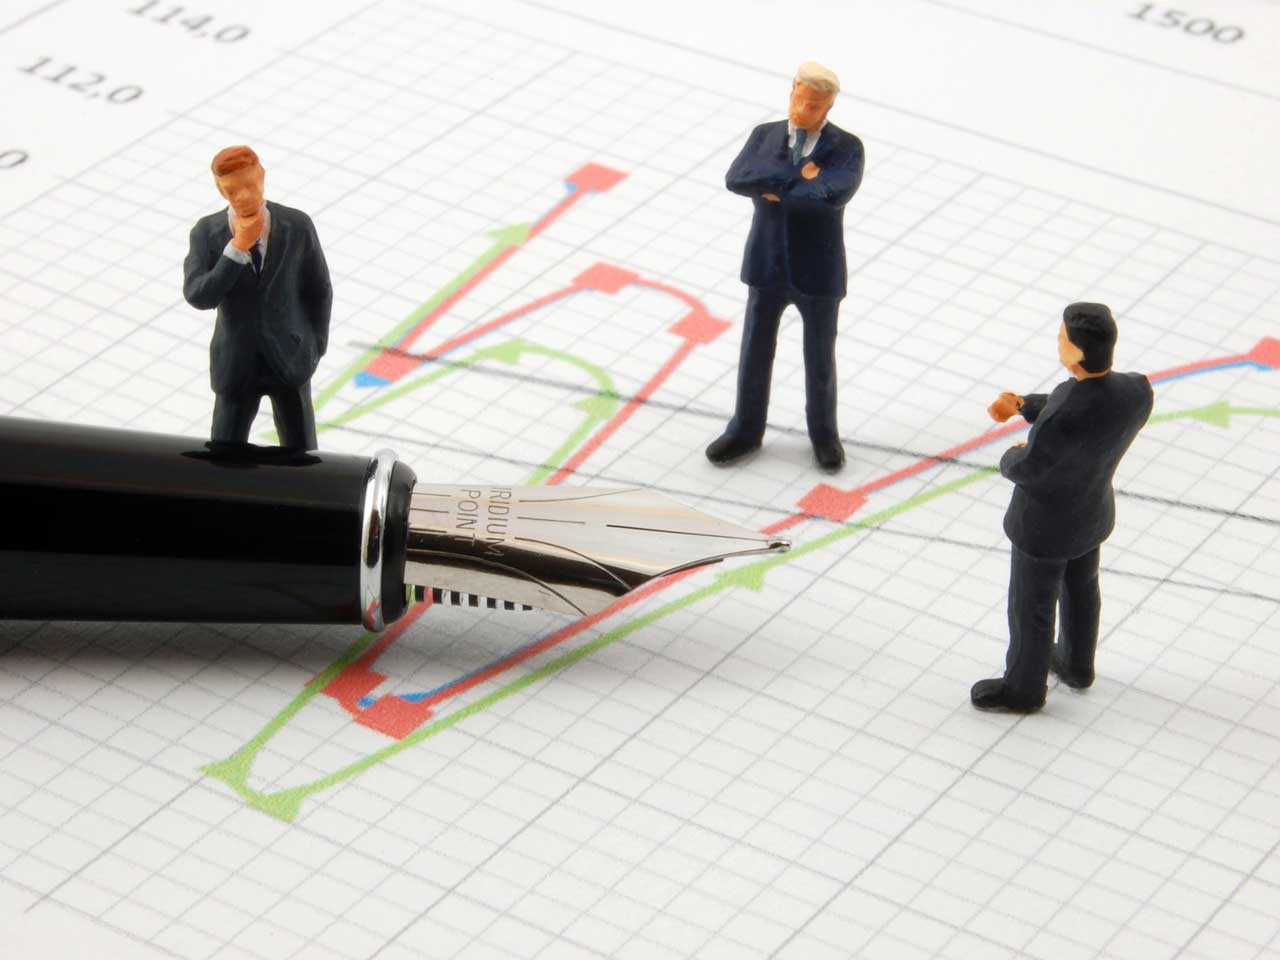 Figurines of stockbrokers looking at a stocks and shares graph